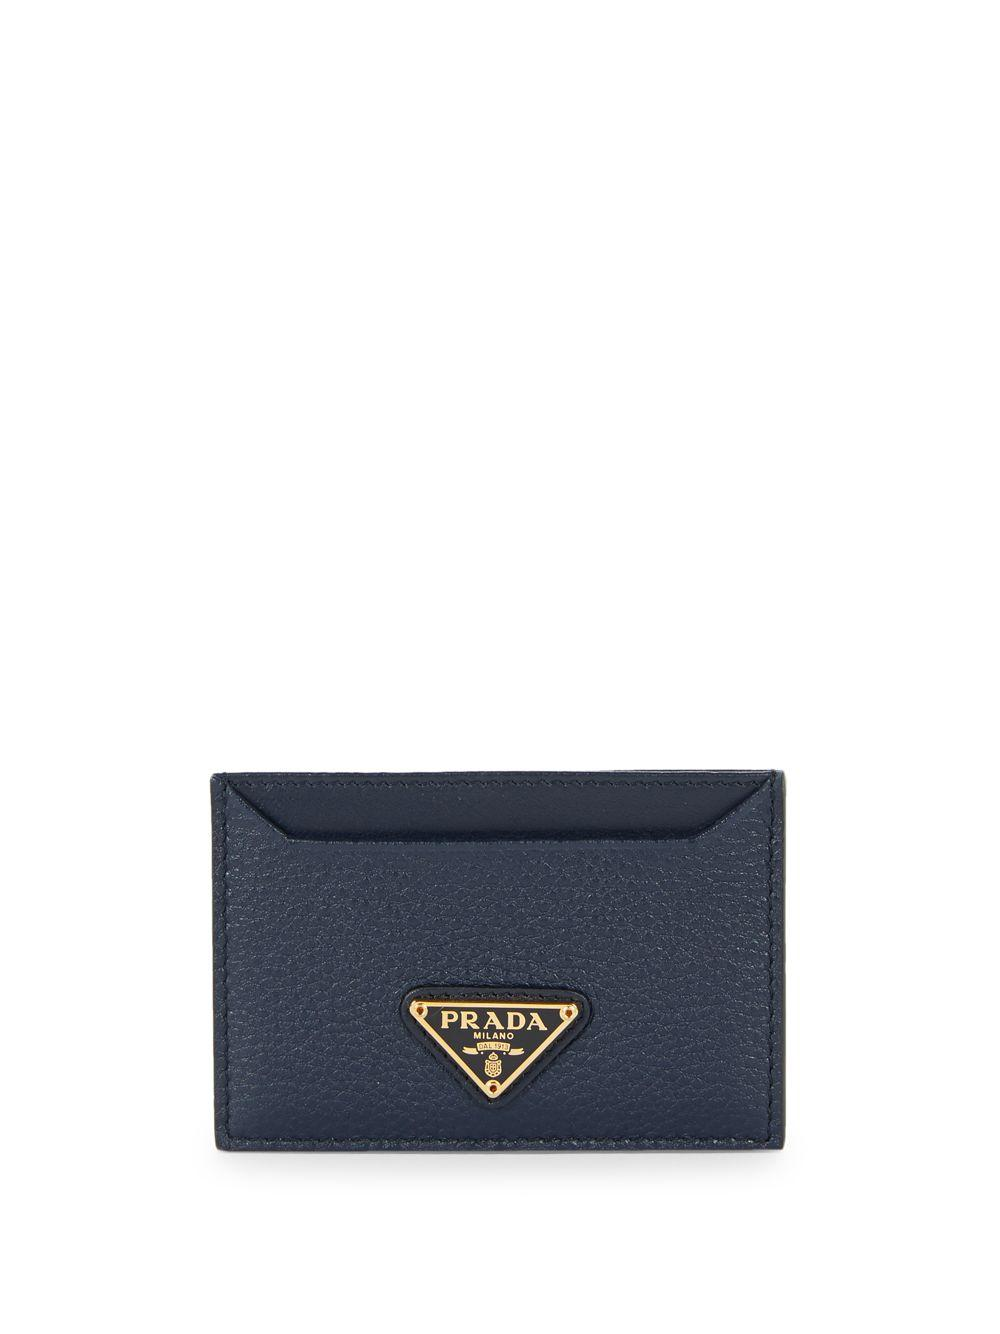 532ebce0ee Prada Logo Grained Leather Card Case in Blue - Lyst